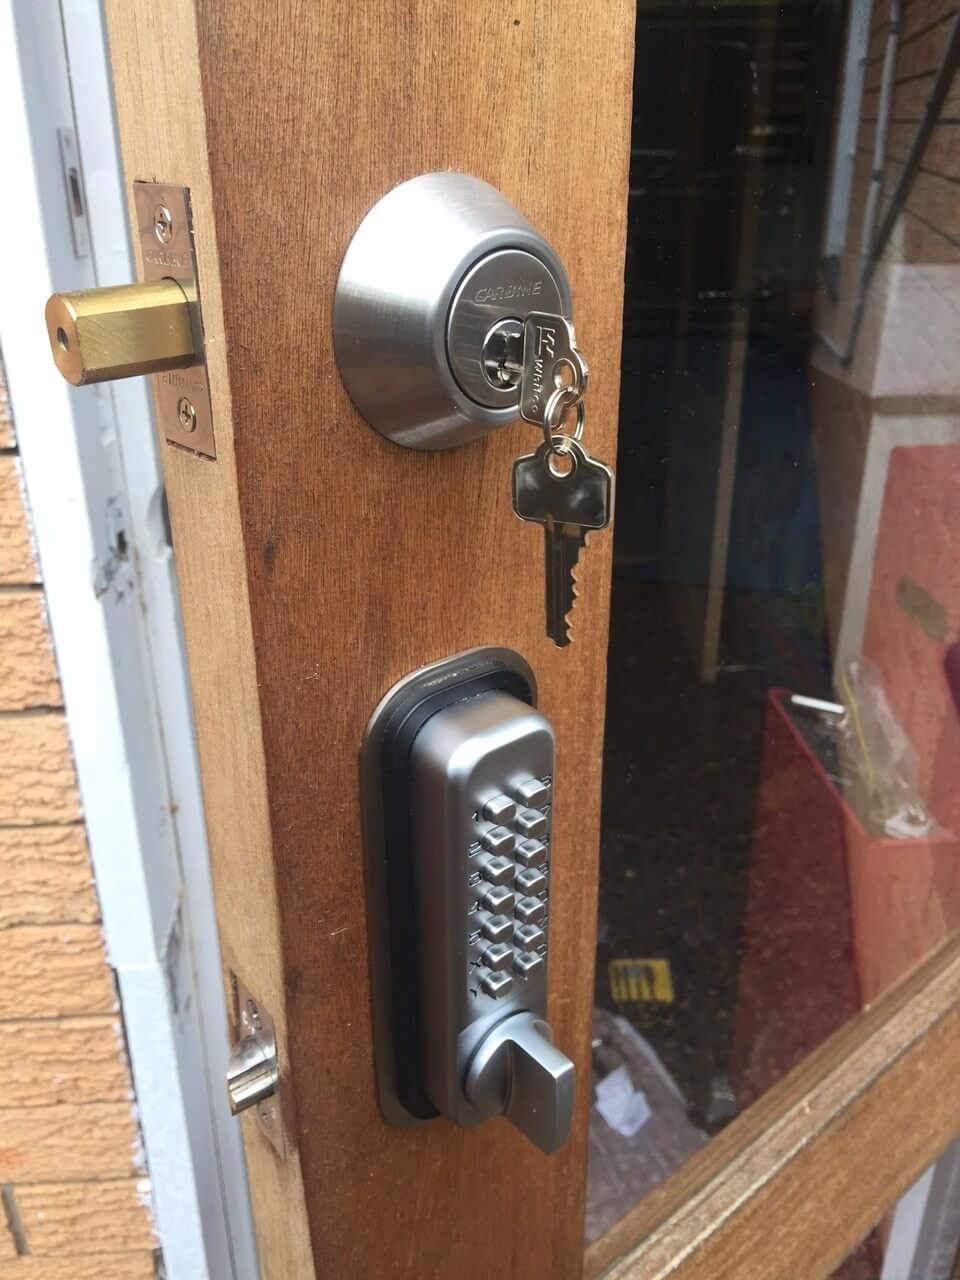 Emergency locksmith brisbane lock fitted to door with key and digilock